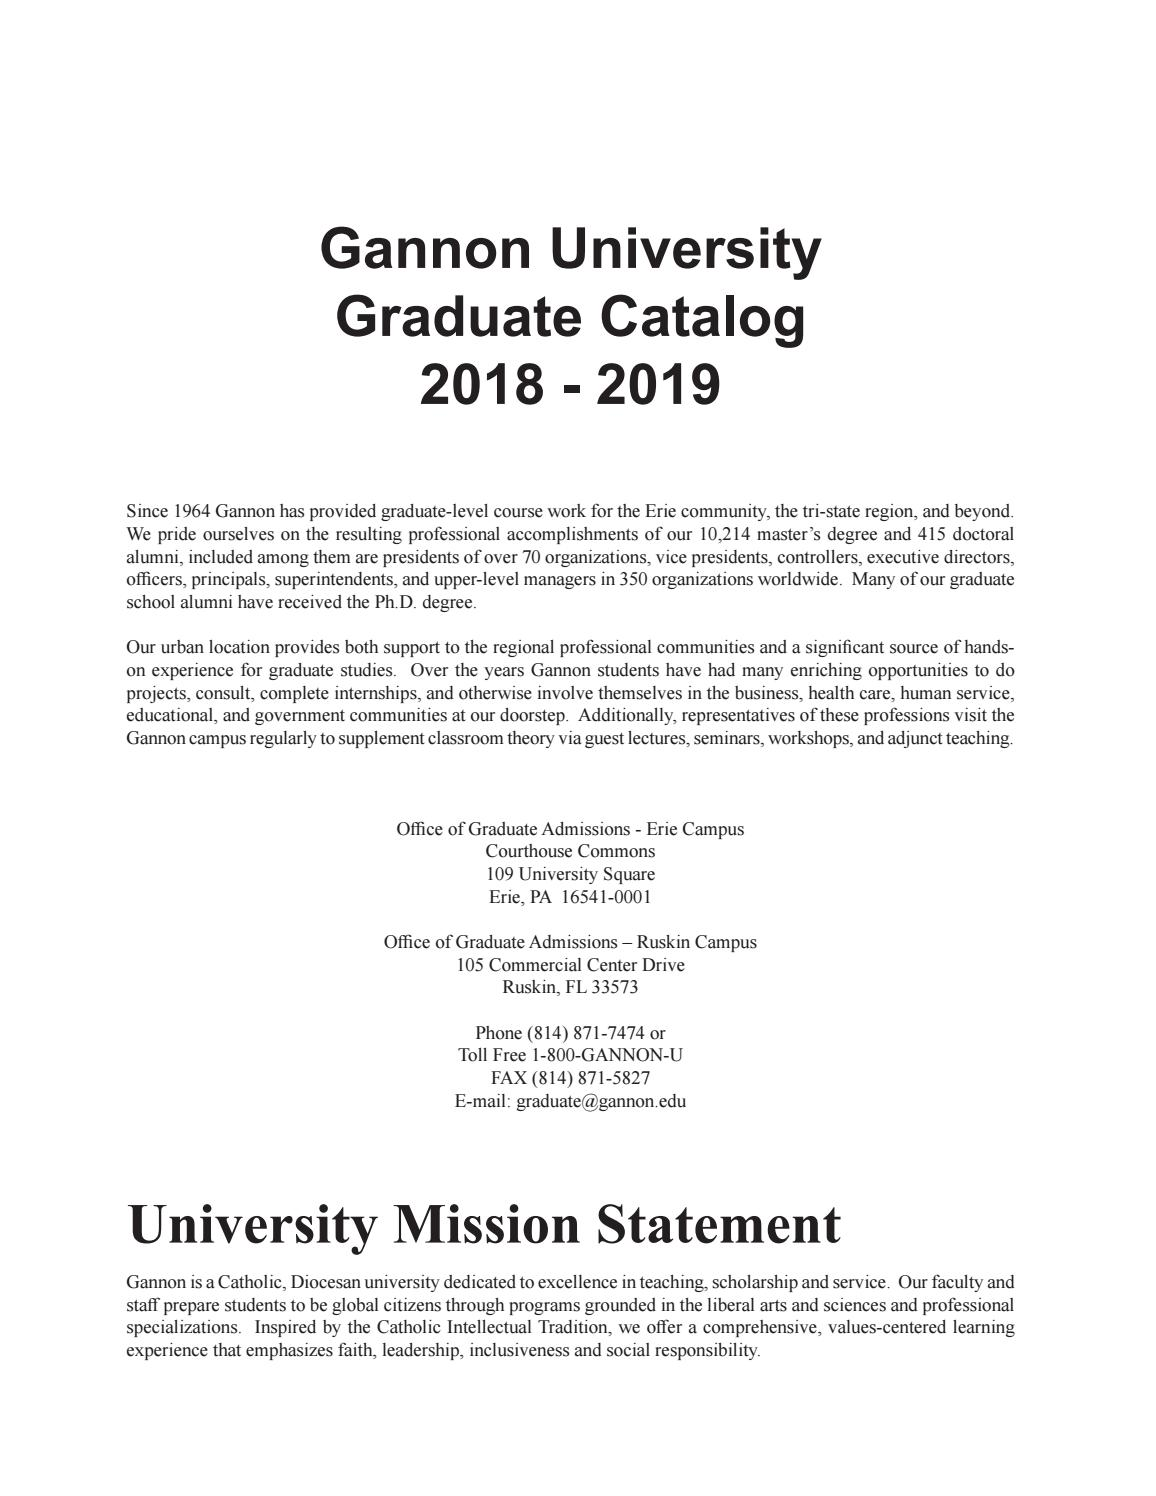 Gannon University Graduate Catalog 2018-2019 by Gannon University